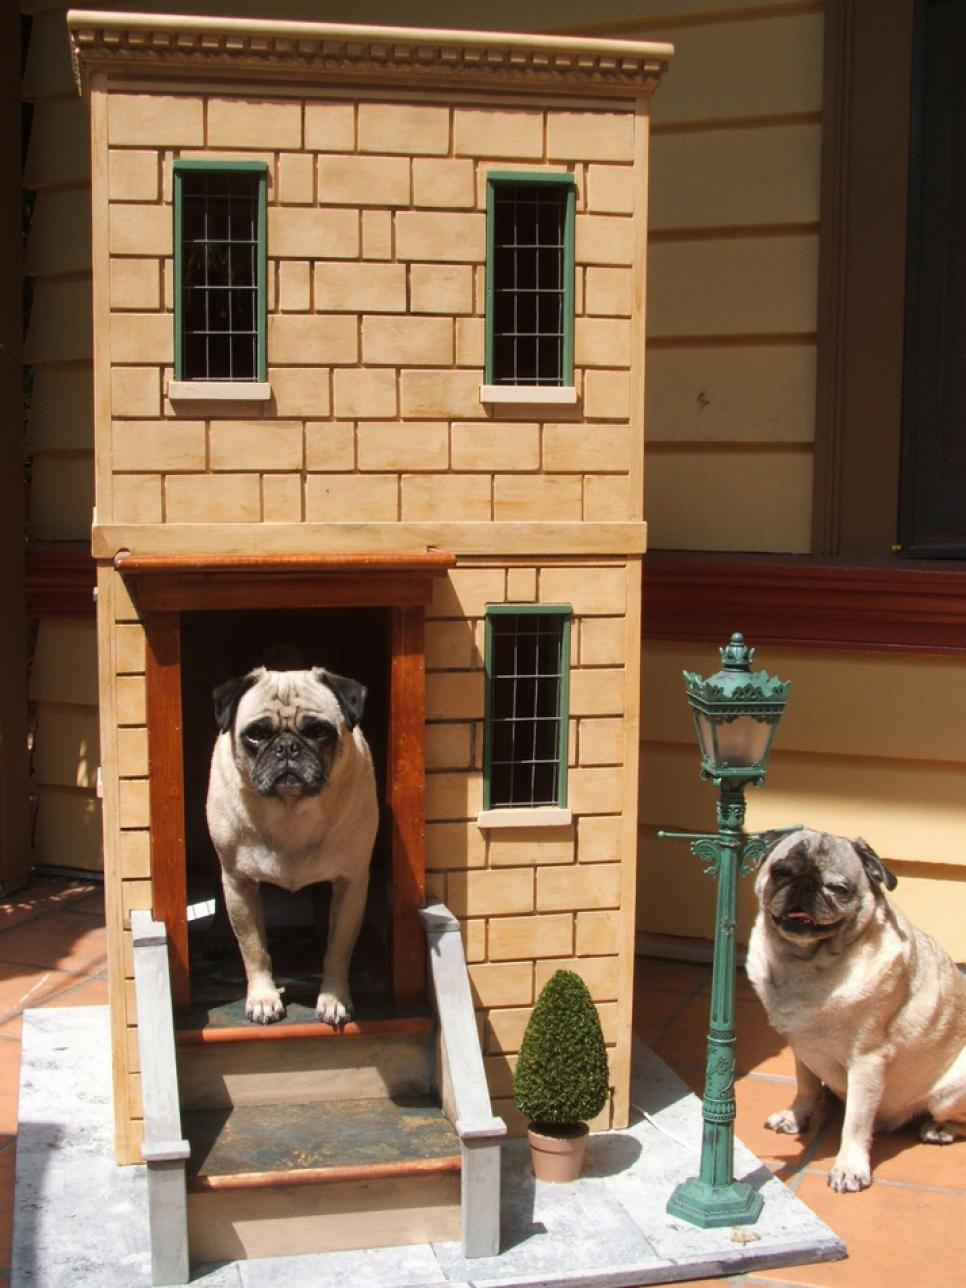 Two story dog house for pugs